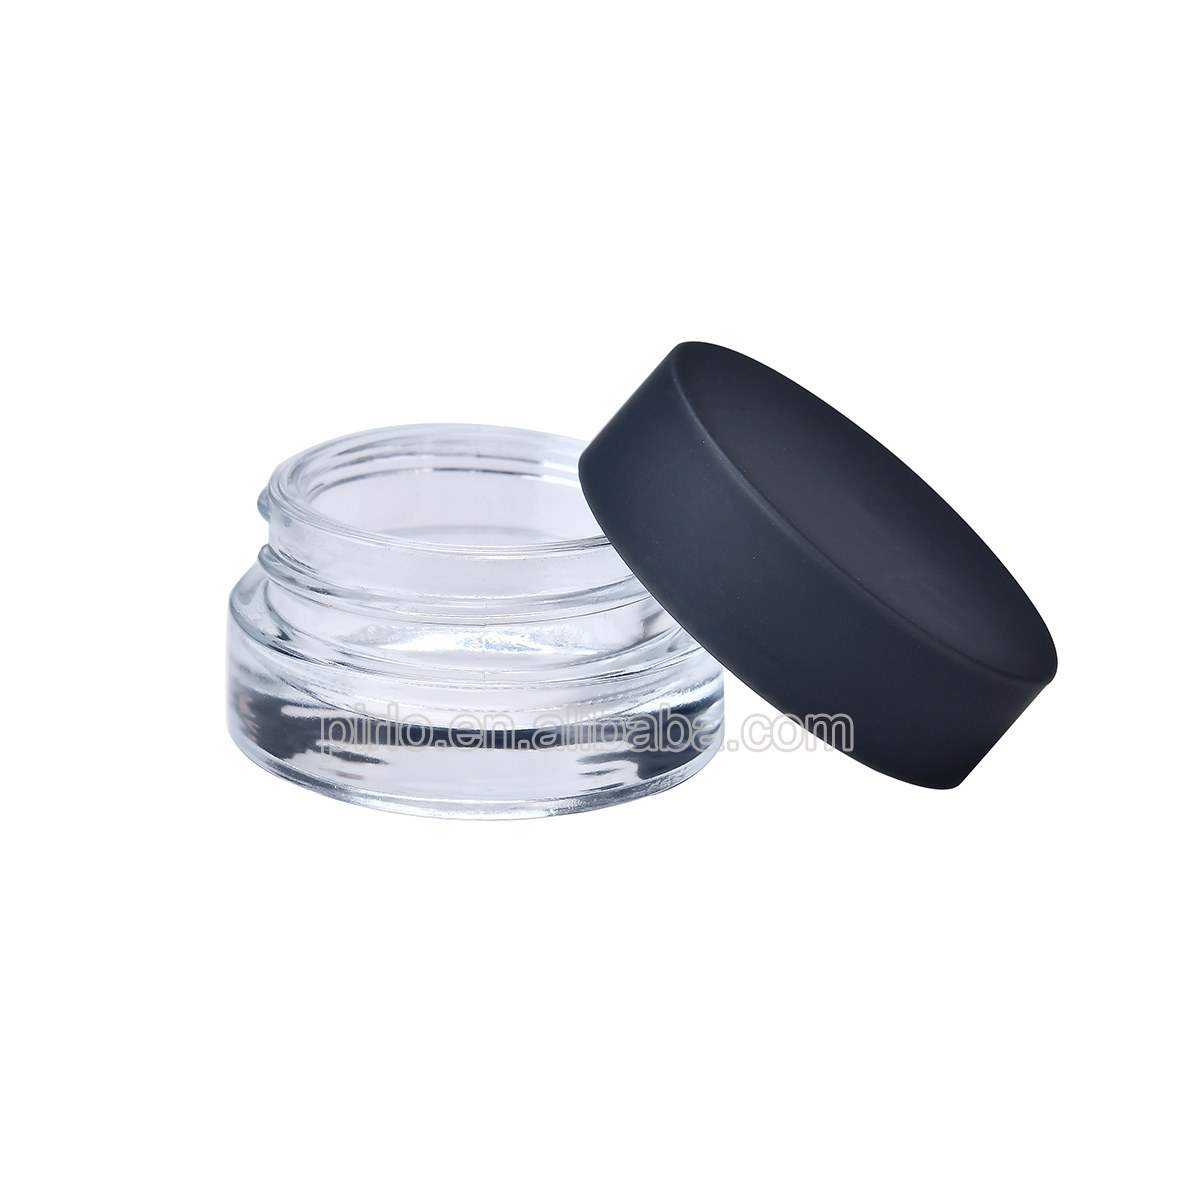 5g small clear glass jar with matte black lid eye cream jar glass cosmetic sampler cream jars